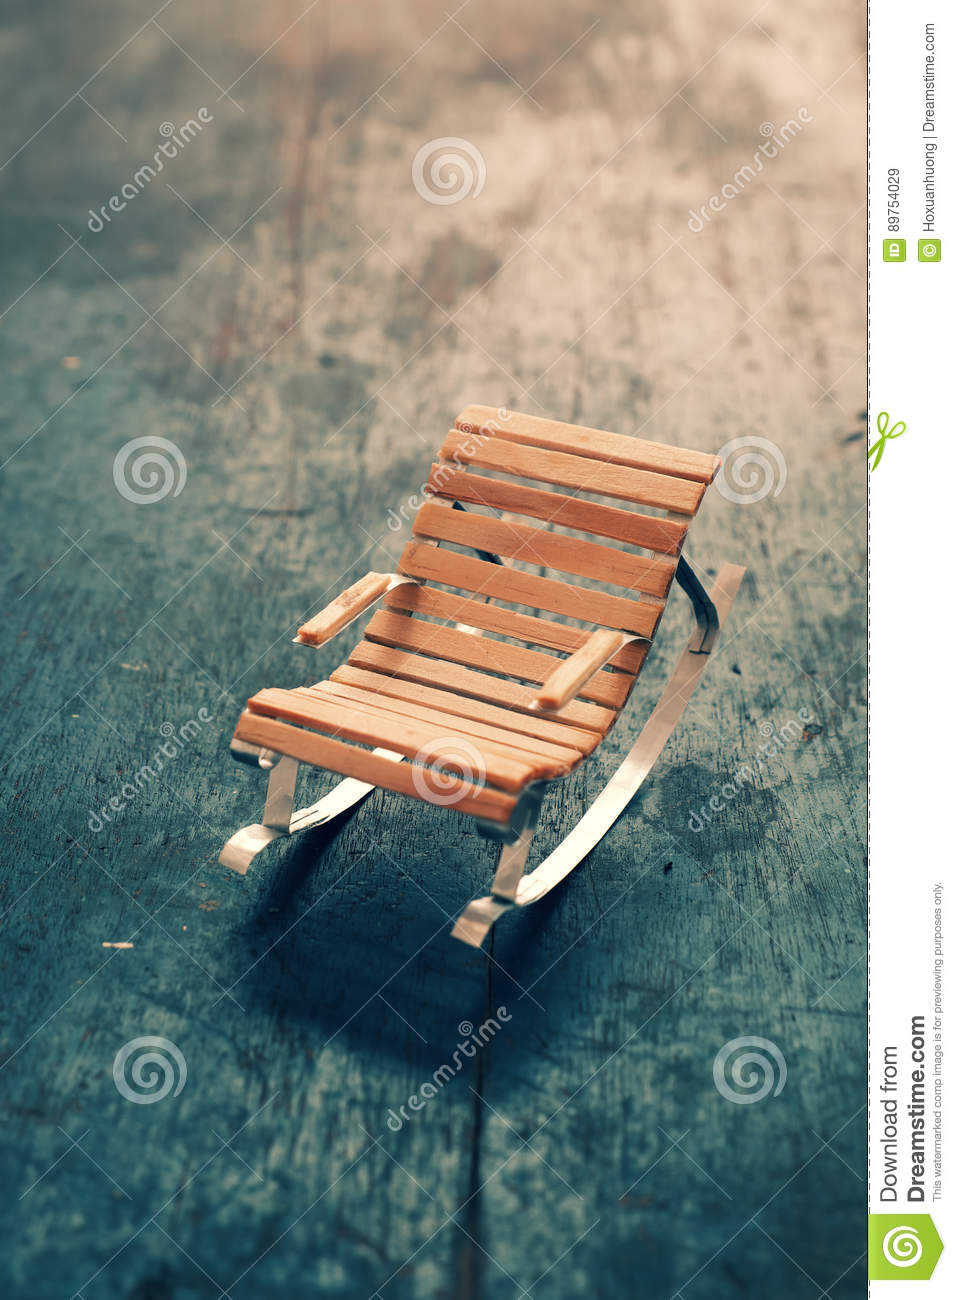 Mini Furniture, Cute Small Chair Stock Image - Image of hobby